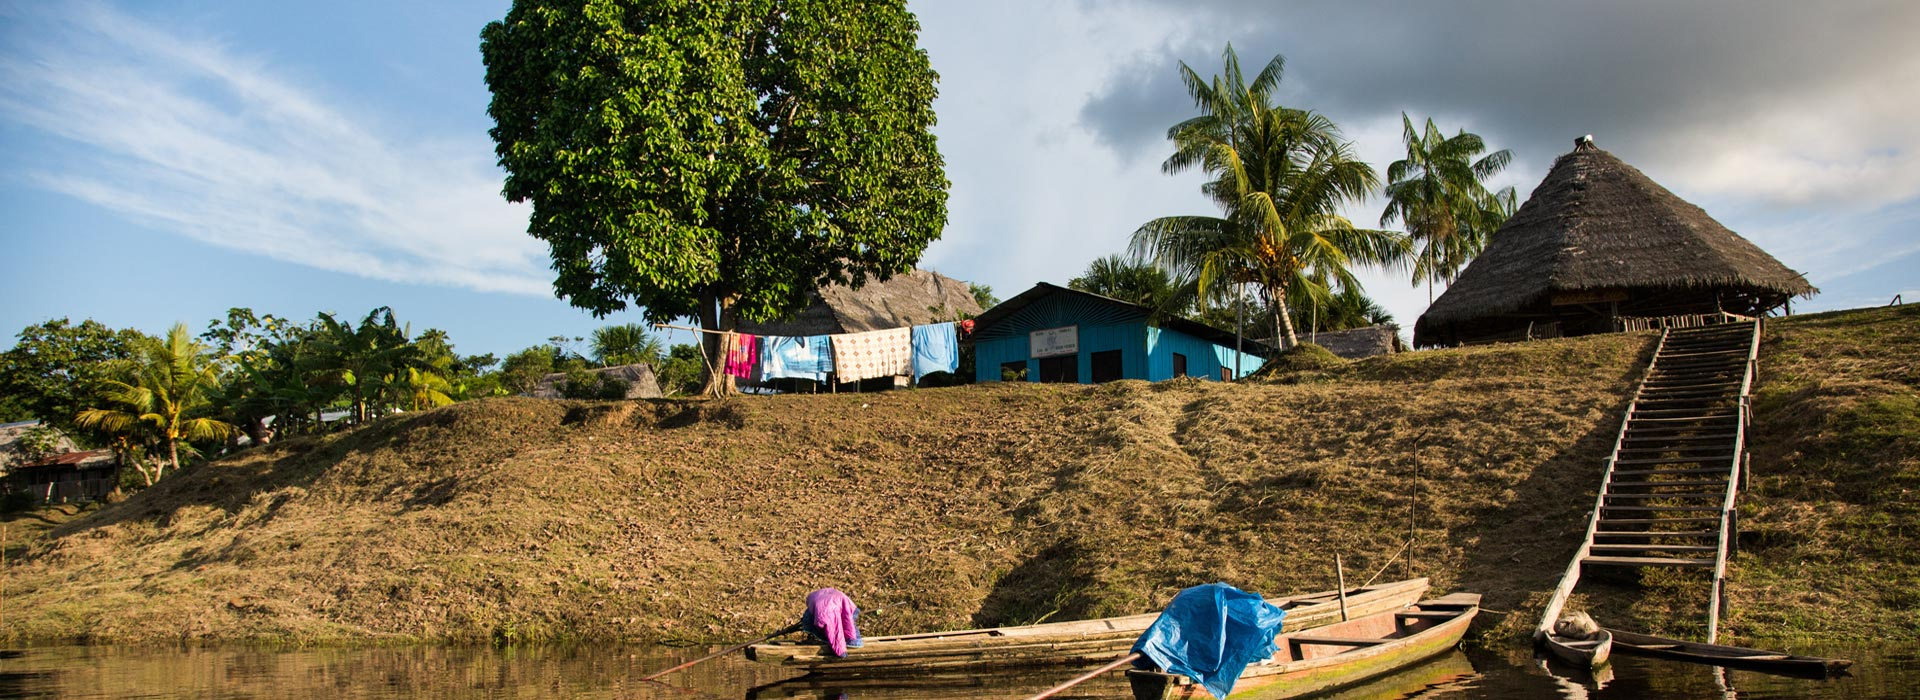 A small village on the banks of the Amazon